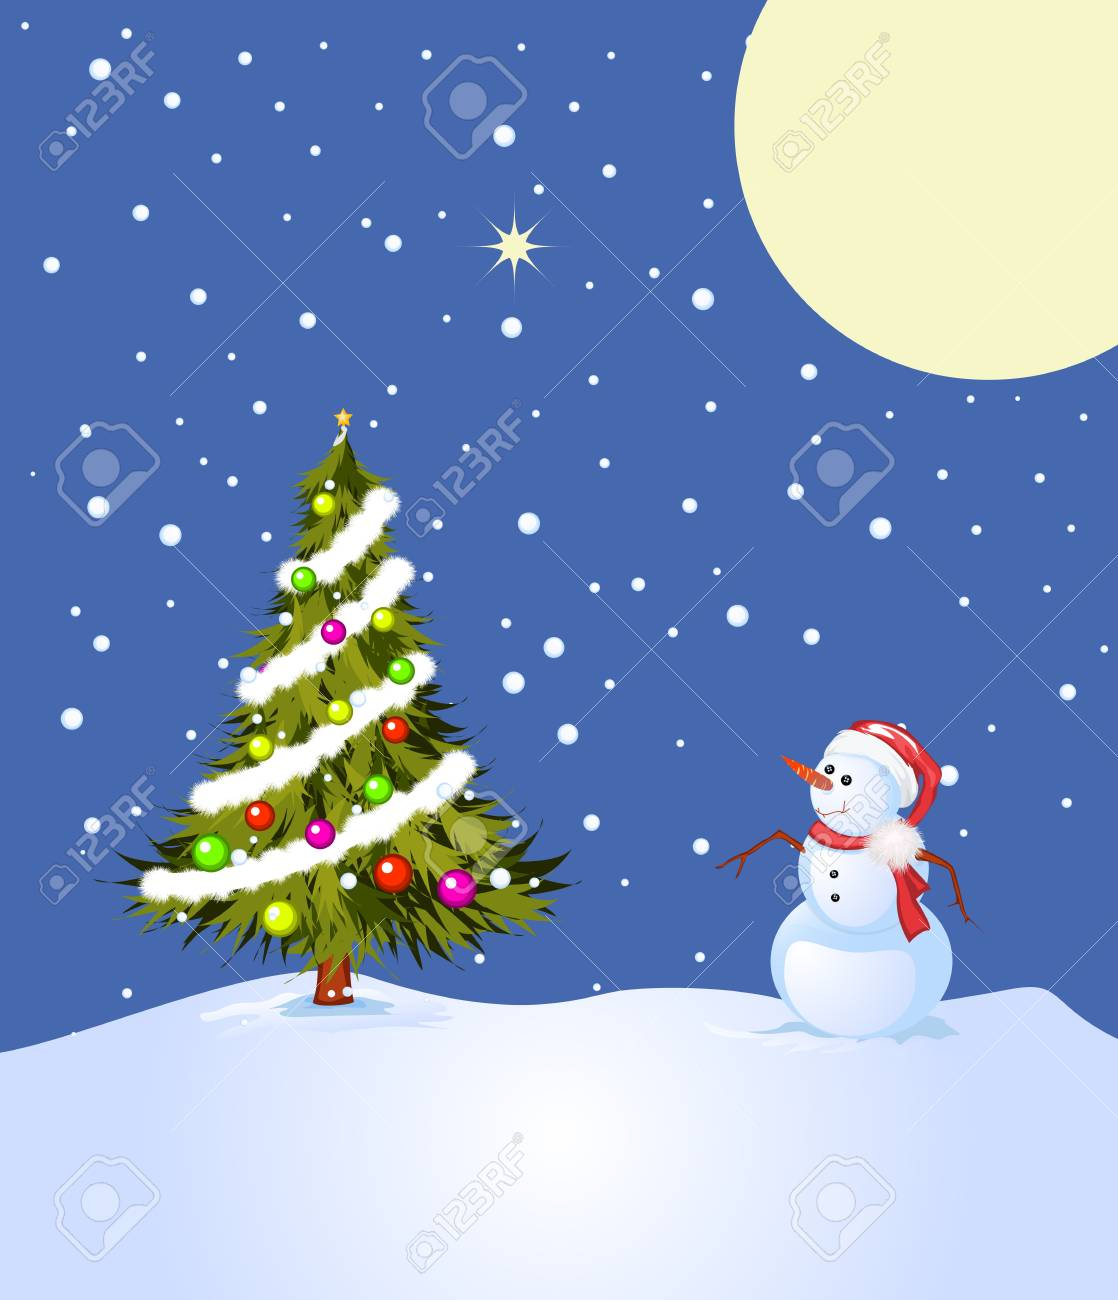 Holly night, illustration with snowman and decorated Christmas tree Stock Photo - 8467724